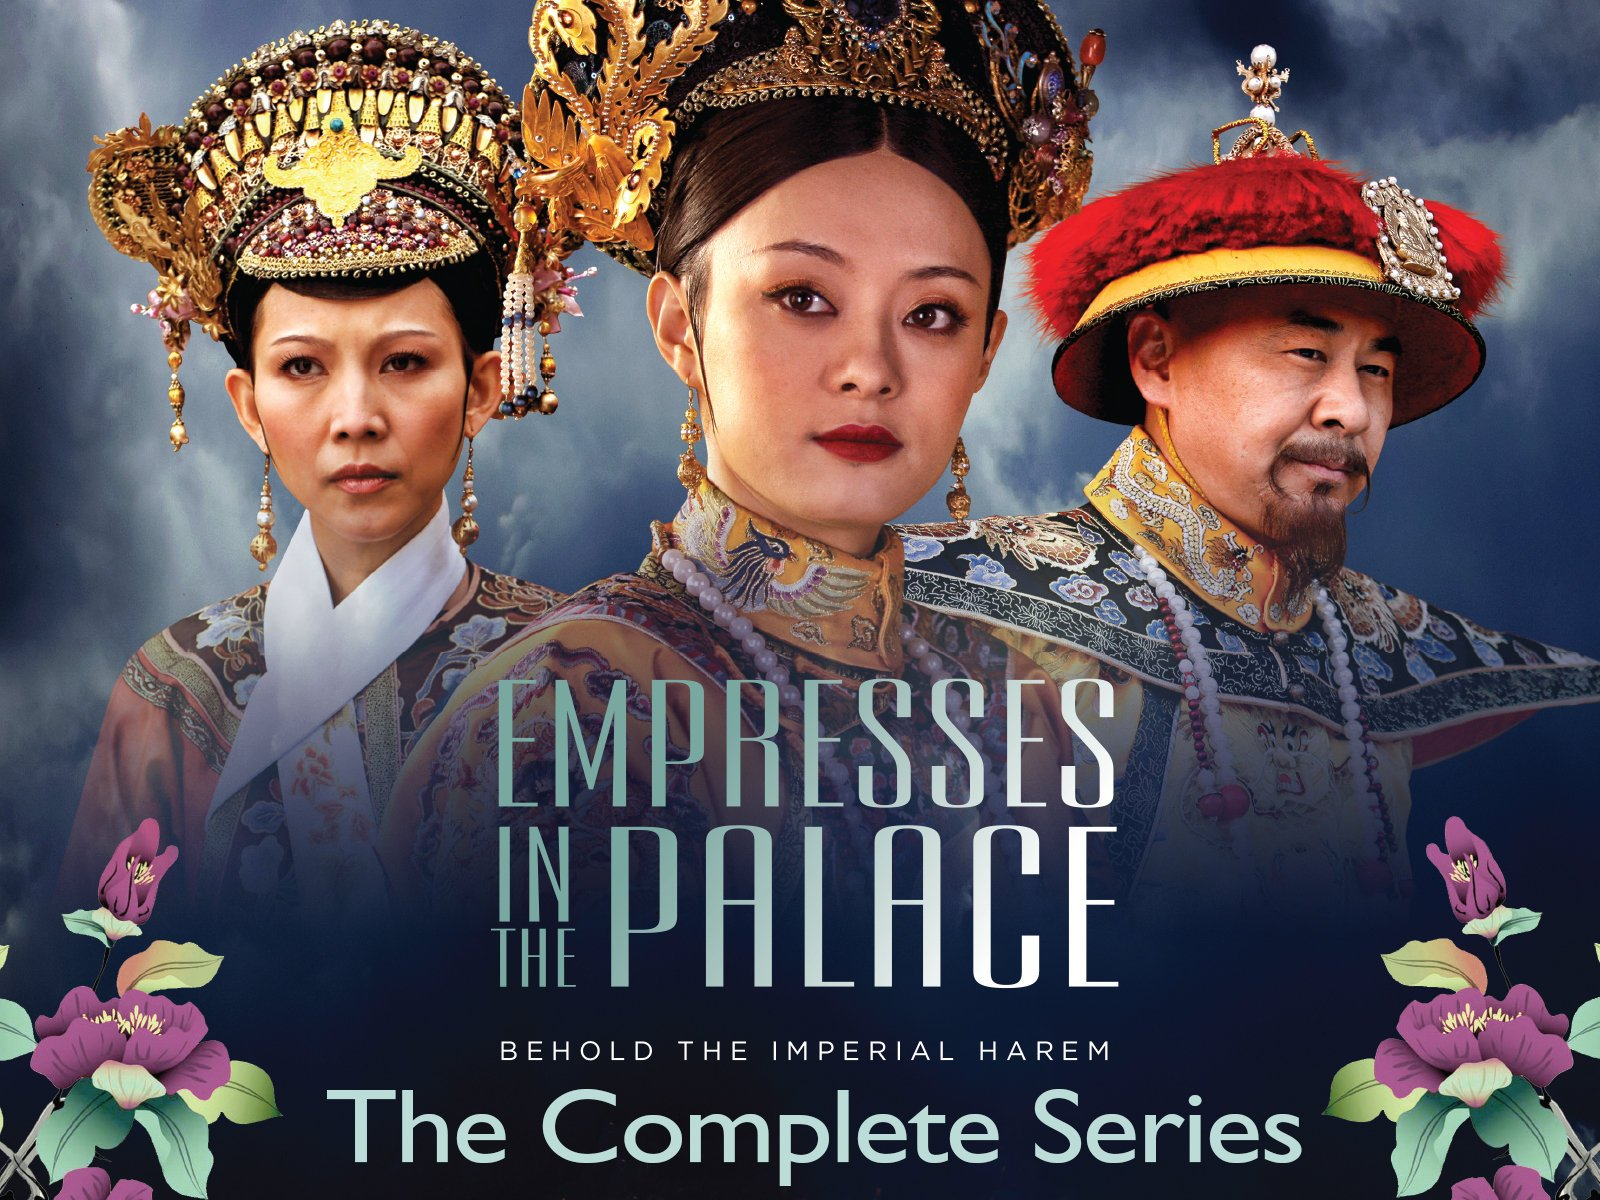 Amazon com: Watch Empresses in the Palace - The Complete